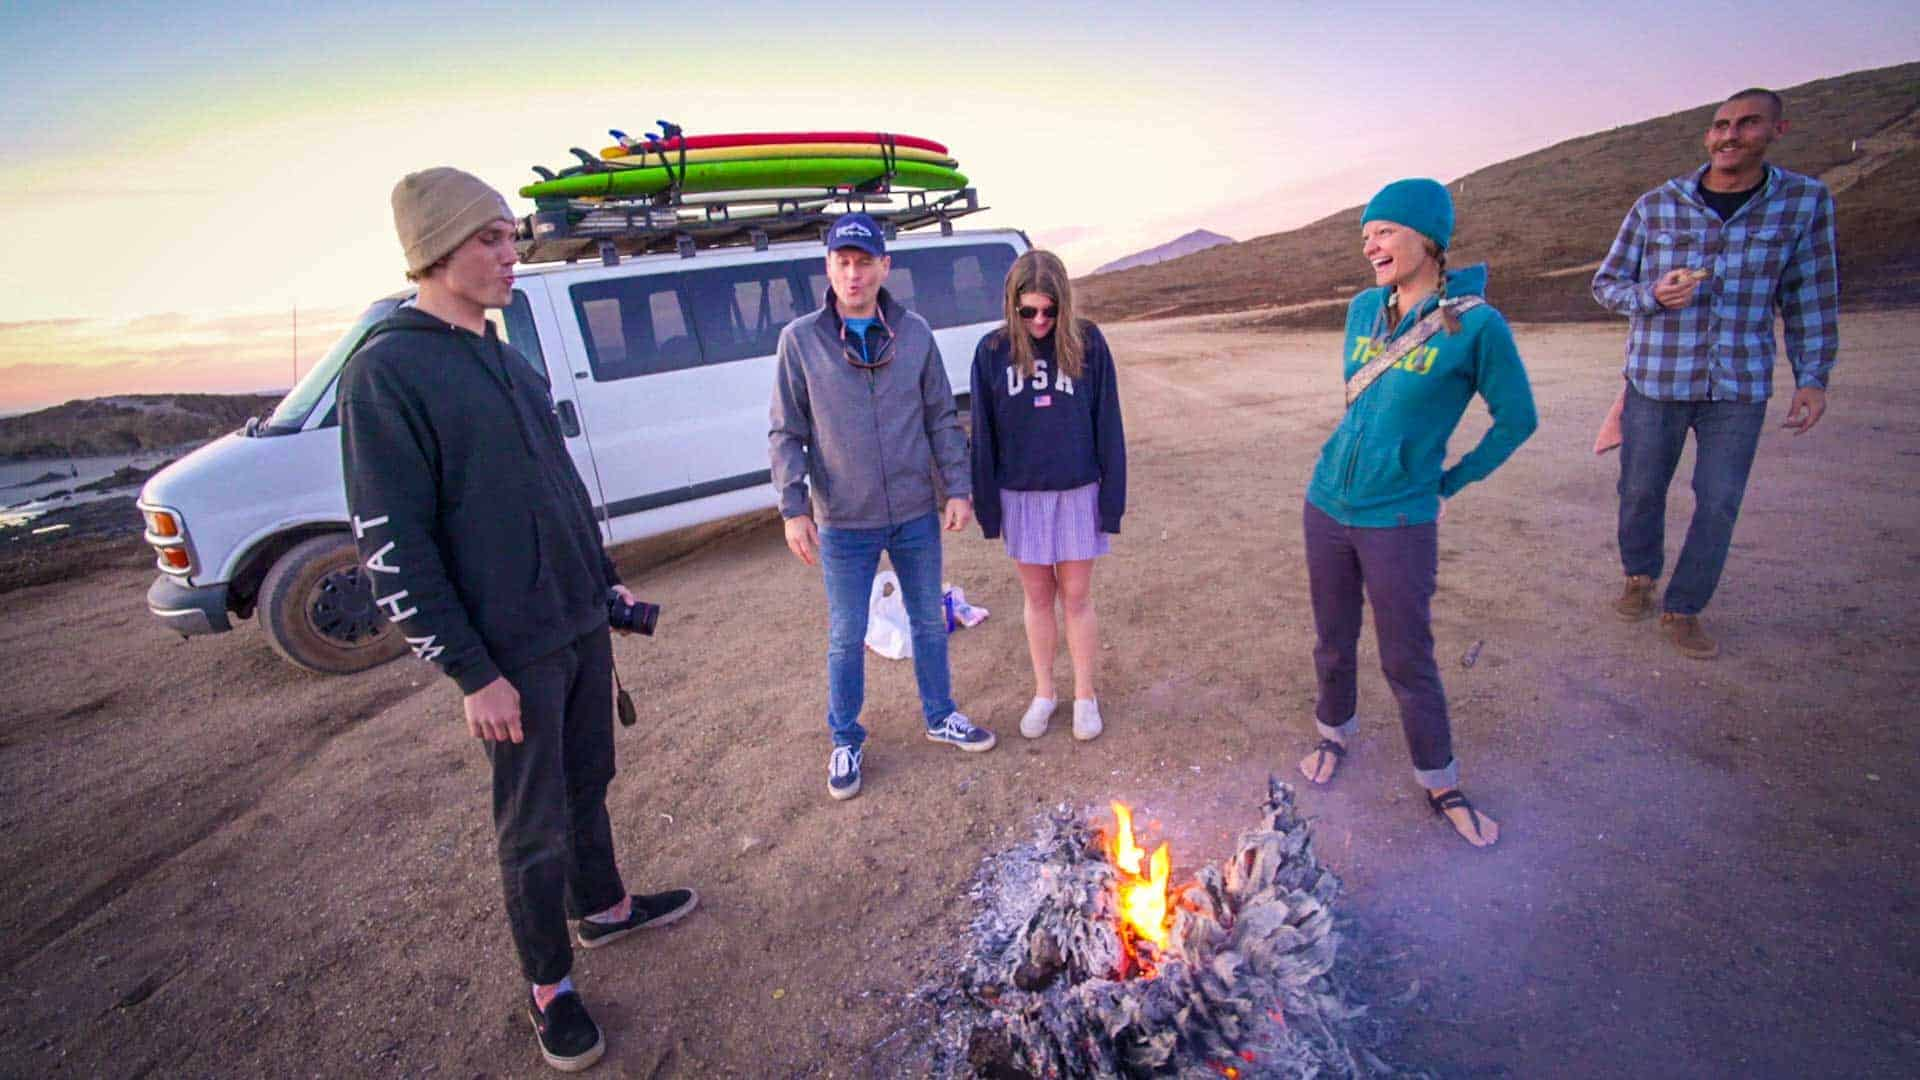 Adventure-in-a-backpack-baja-california-surf-tour-53